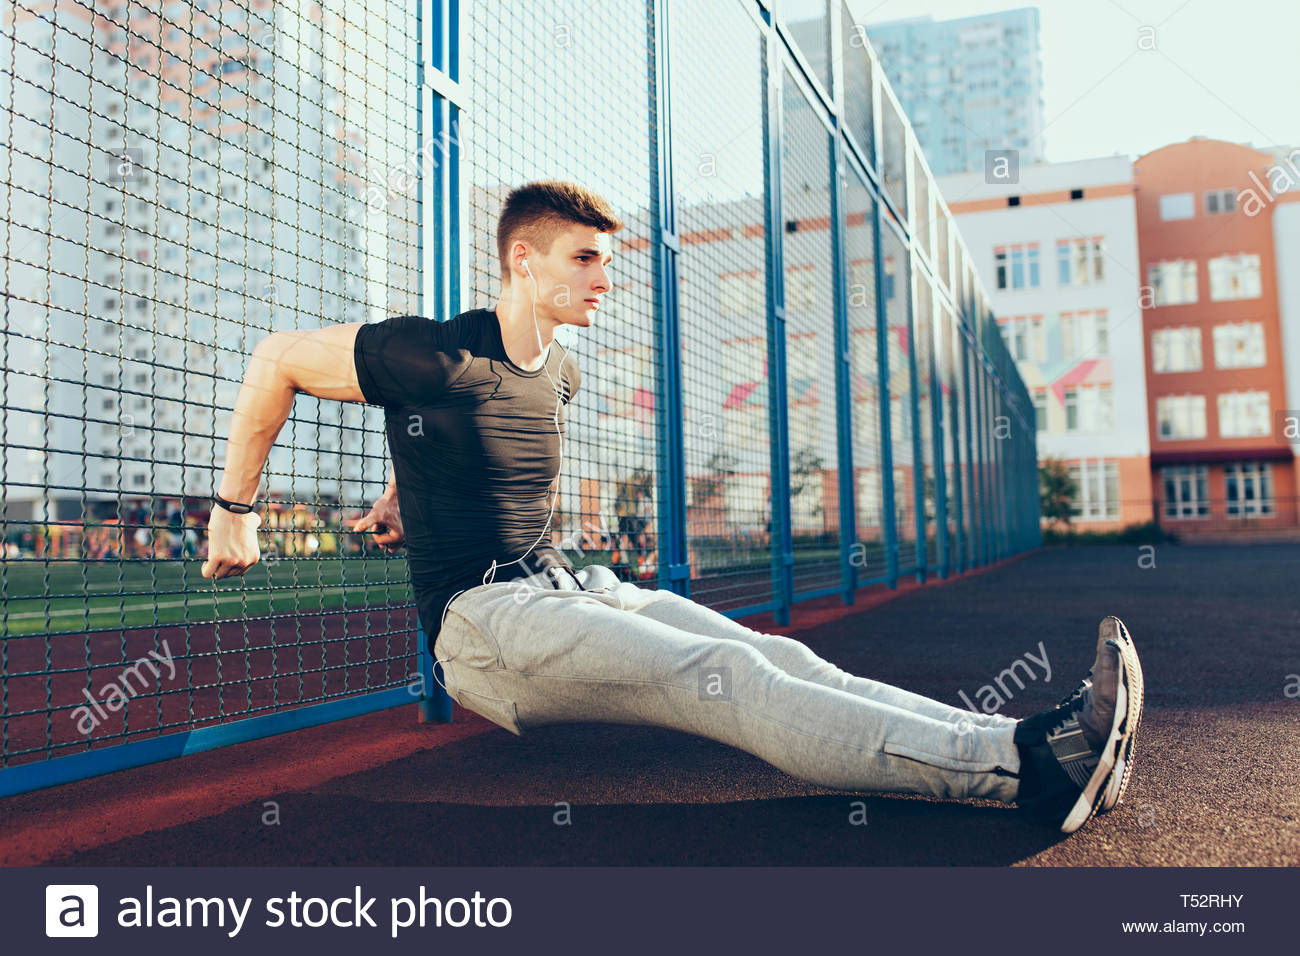 Tense guy with a muscular body at workout training near fence in the